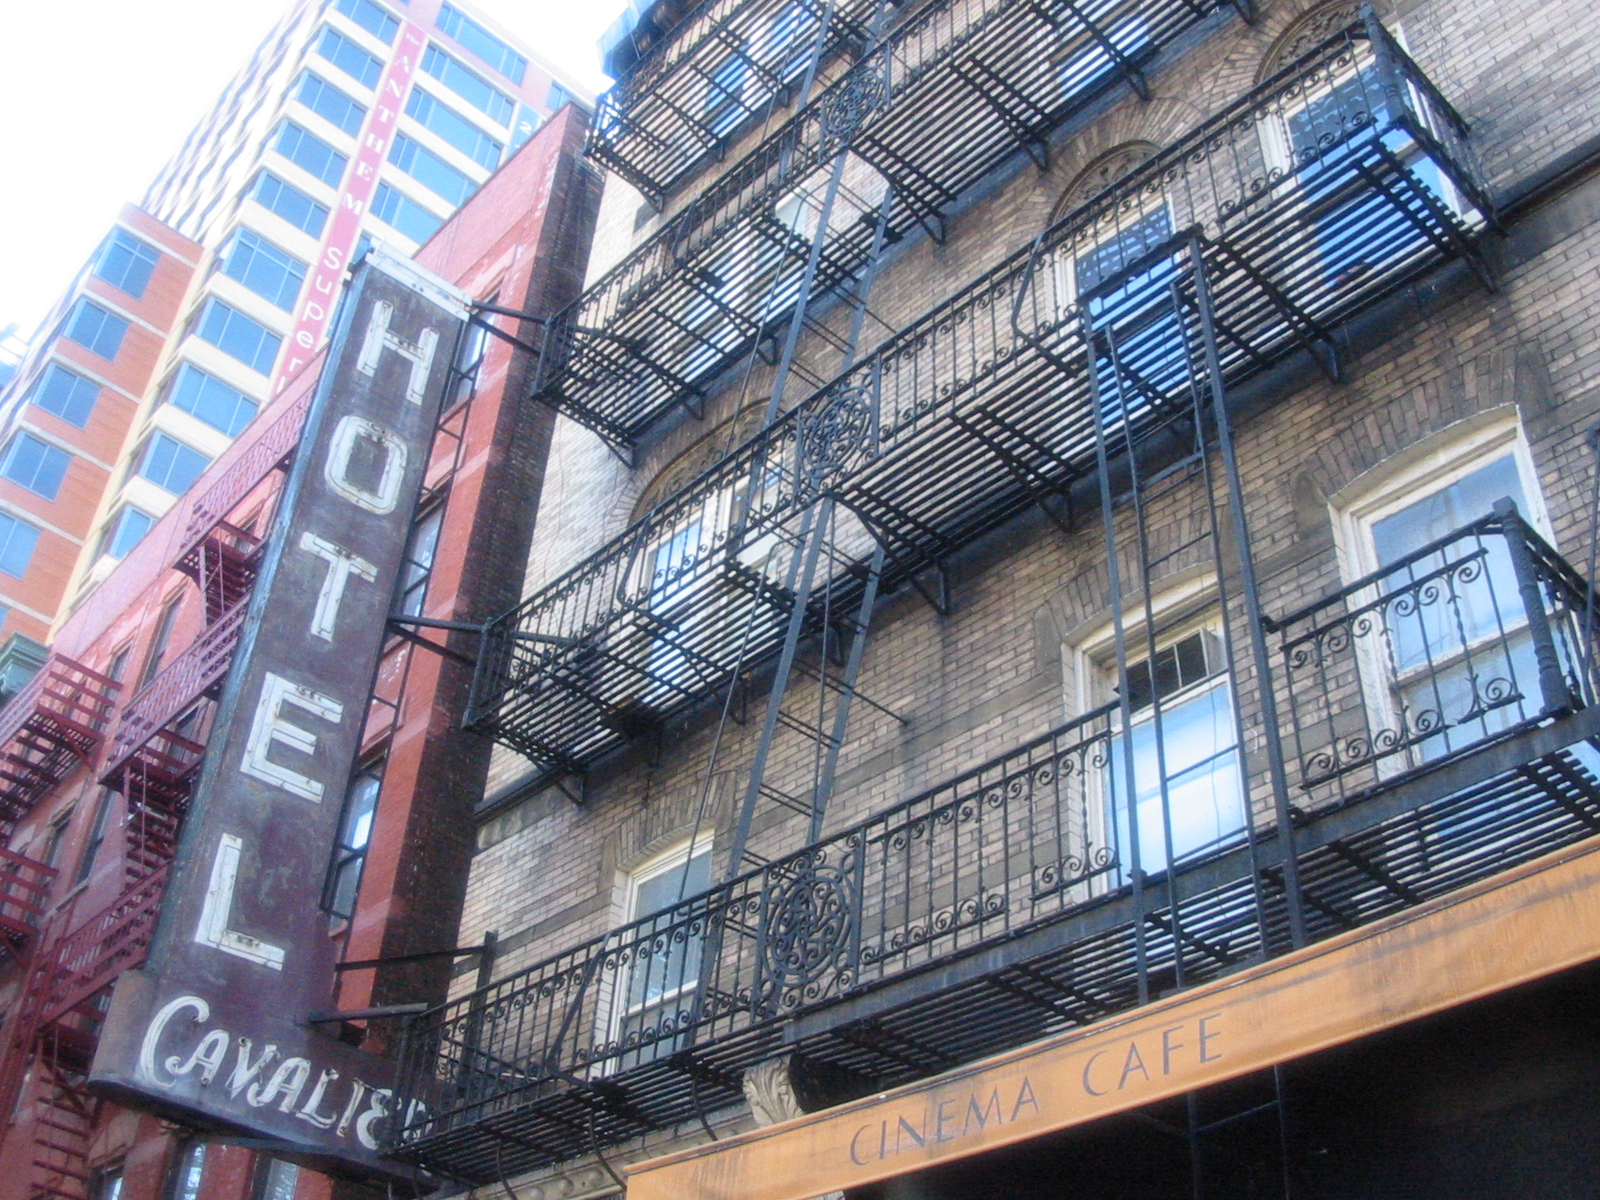 The Hotel Cavalier | 34th Street, New York NY